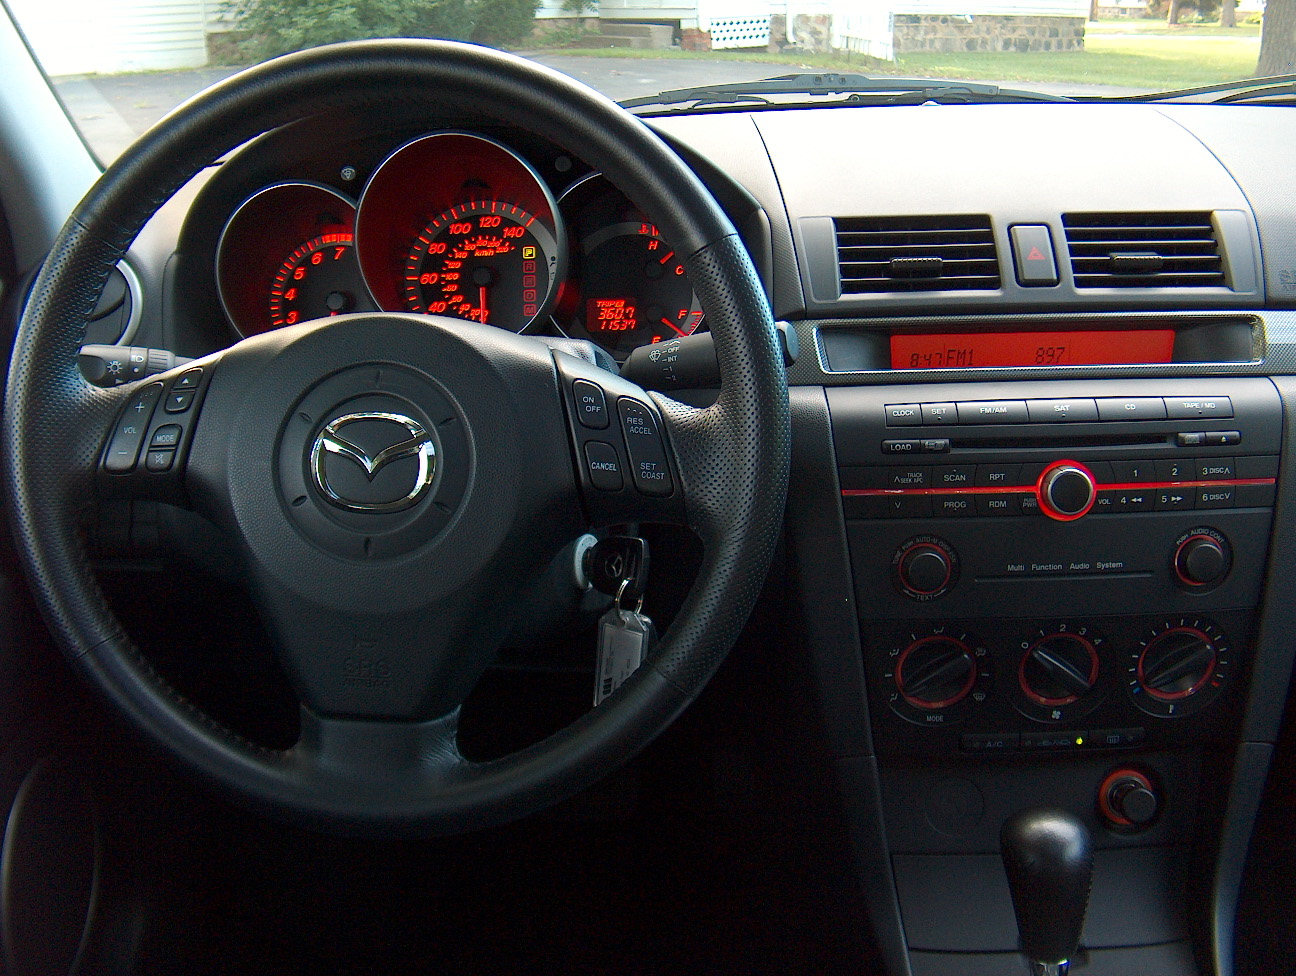 2005 mazda 3 partsopen. Black Bedroom Furniture Sets. Home Design Ideas